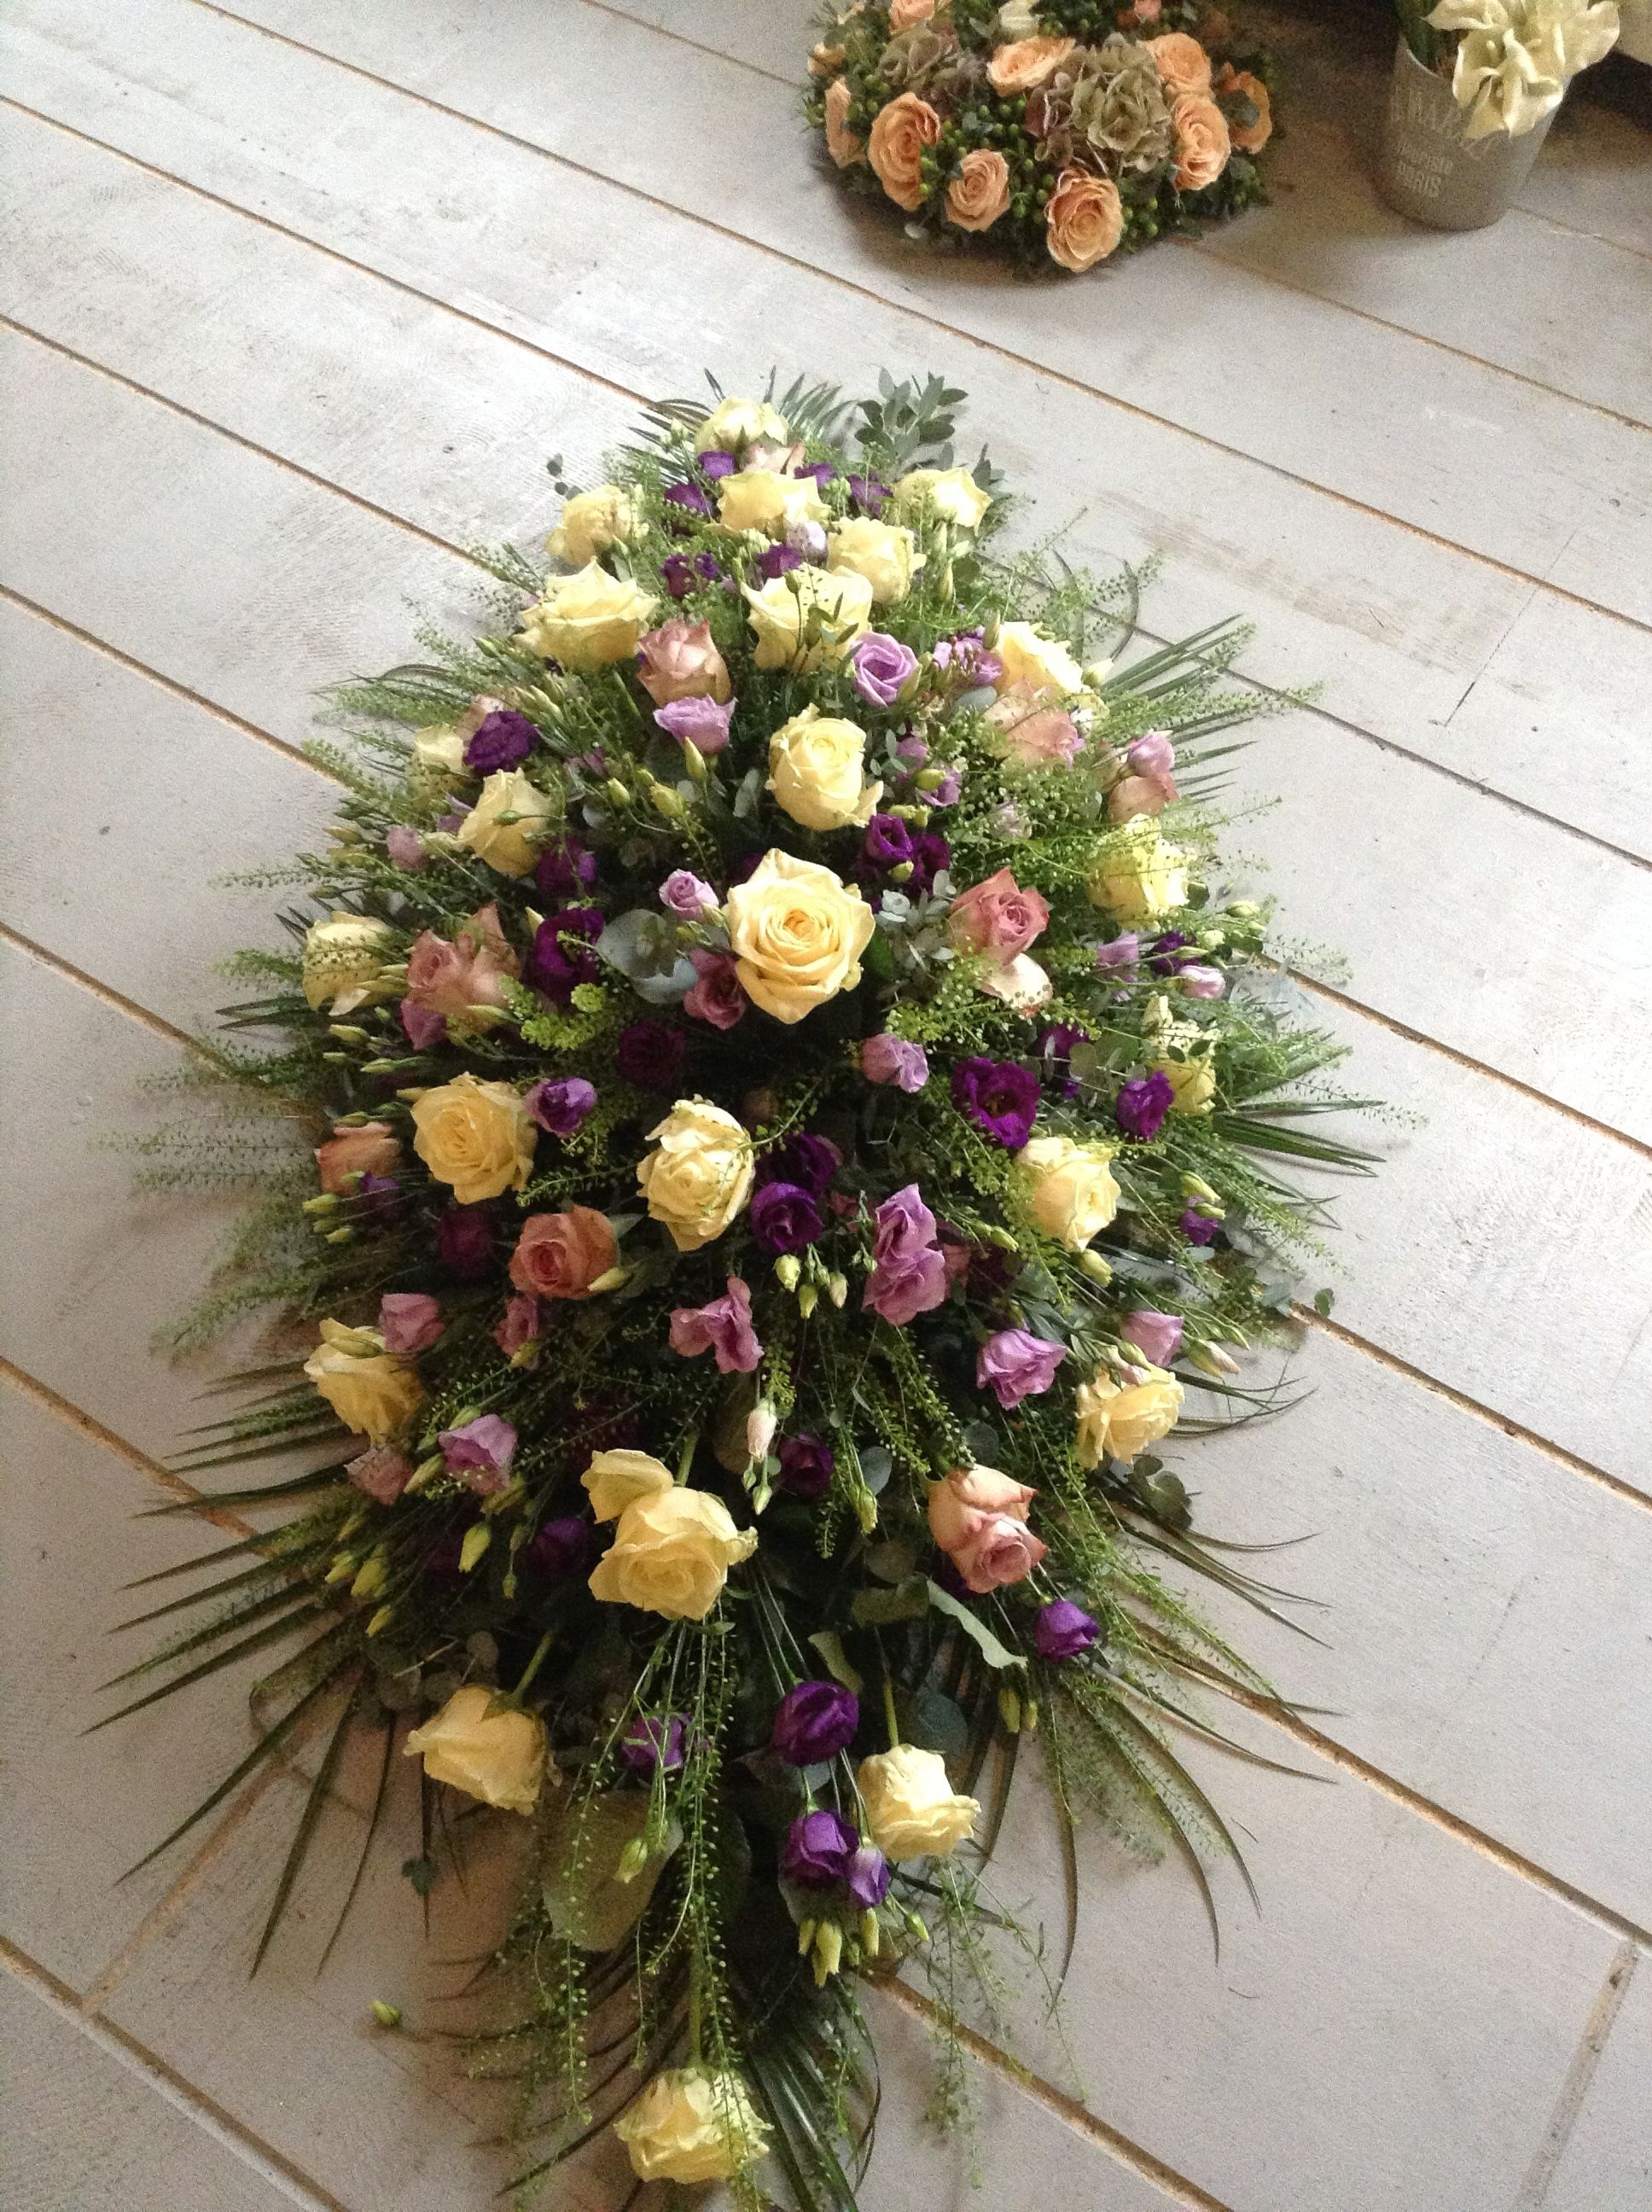 Funeral flowers cream and purple funeral flowers coffin spray funeral flowers cream and purple funeral flowers coffin spray casket spray thefloralartstudio izmirmasajfo